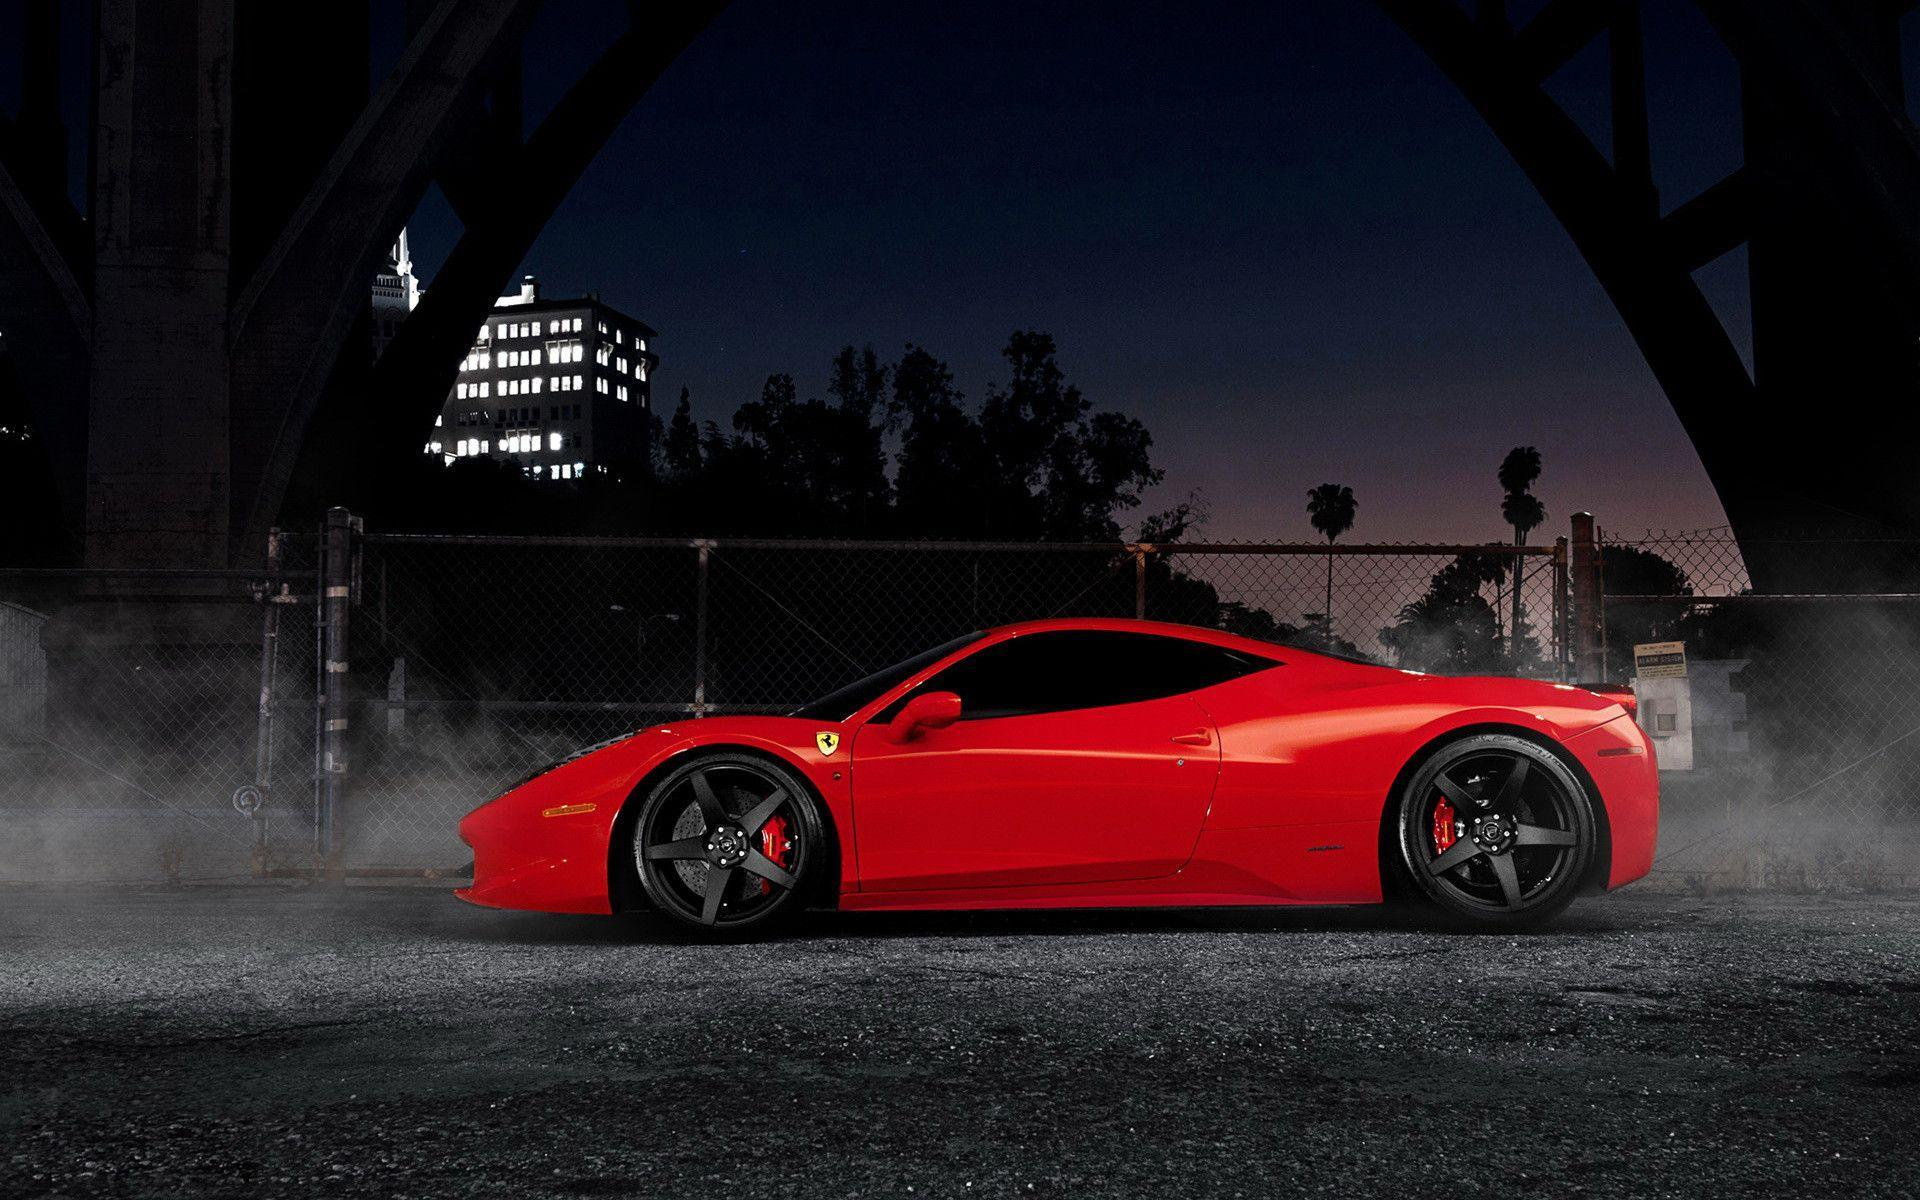 2015 ferrari 458 italia wallpapers wallpaper cave for Wallpaper italia